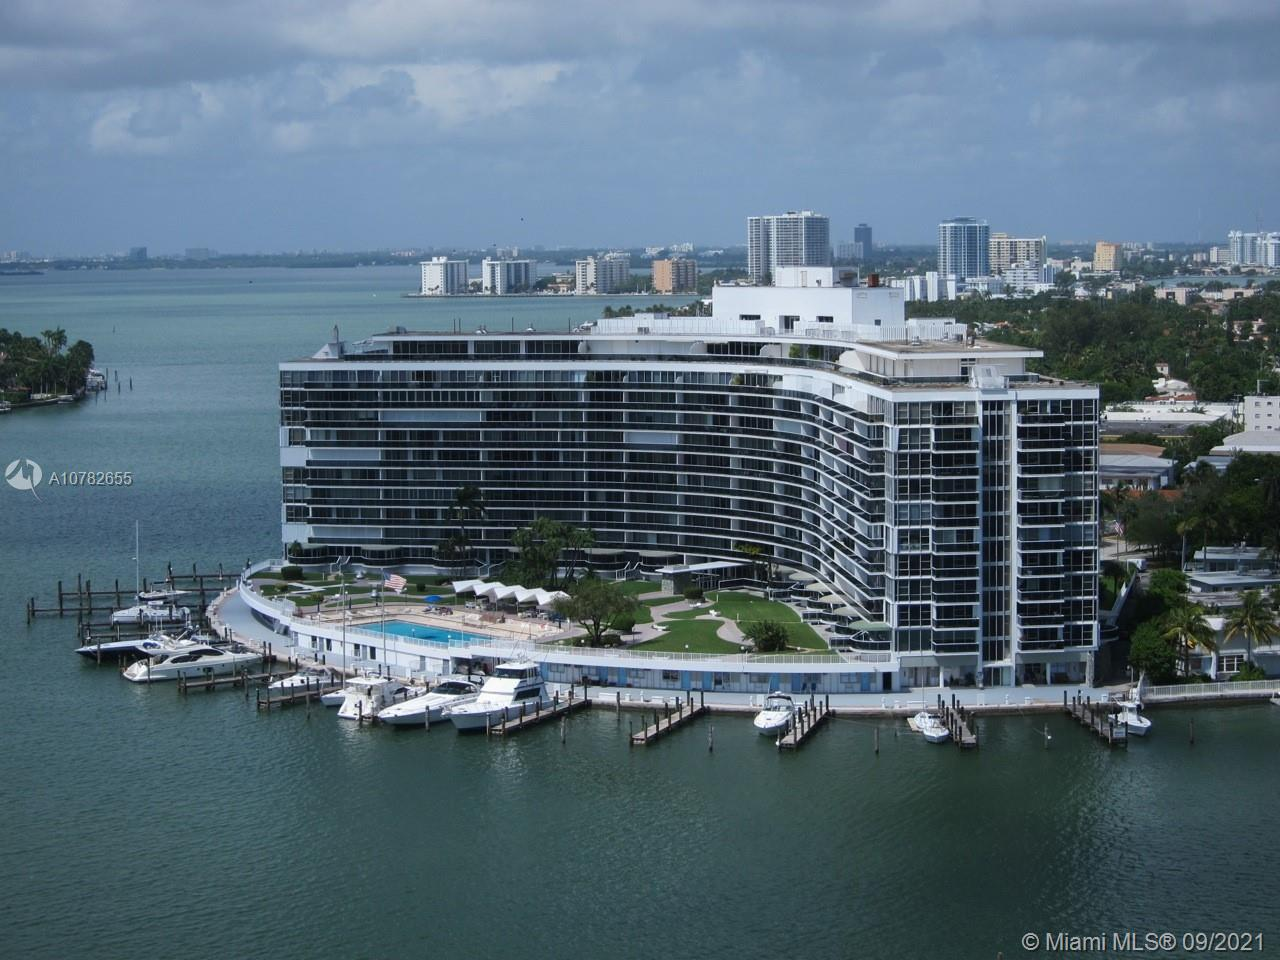 Luxury at its finest in this 2 beds 2 baths. Unobstructed intracoastal and canal views from all rooms of the home. Solid exterior and interiors walls, glass windows from floor to ceiling and balcony. Olympic size heated pool, gym, 24 hr security, one valet parking included, additional valet at $75 a month each. Walking distance to beach, restaurants, supermarkets, and shops. This oversized bay front residence is a hidden jewel of Miami Beach in the historic MIMO architecture King Cole. n King Cole Building HOA Maintenance include: Electrical, hot and cold water, high speed internet, up to three boxes for HD TV., changes of AC filters, pest control and others.  EZ to show. It will not last !!